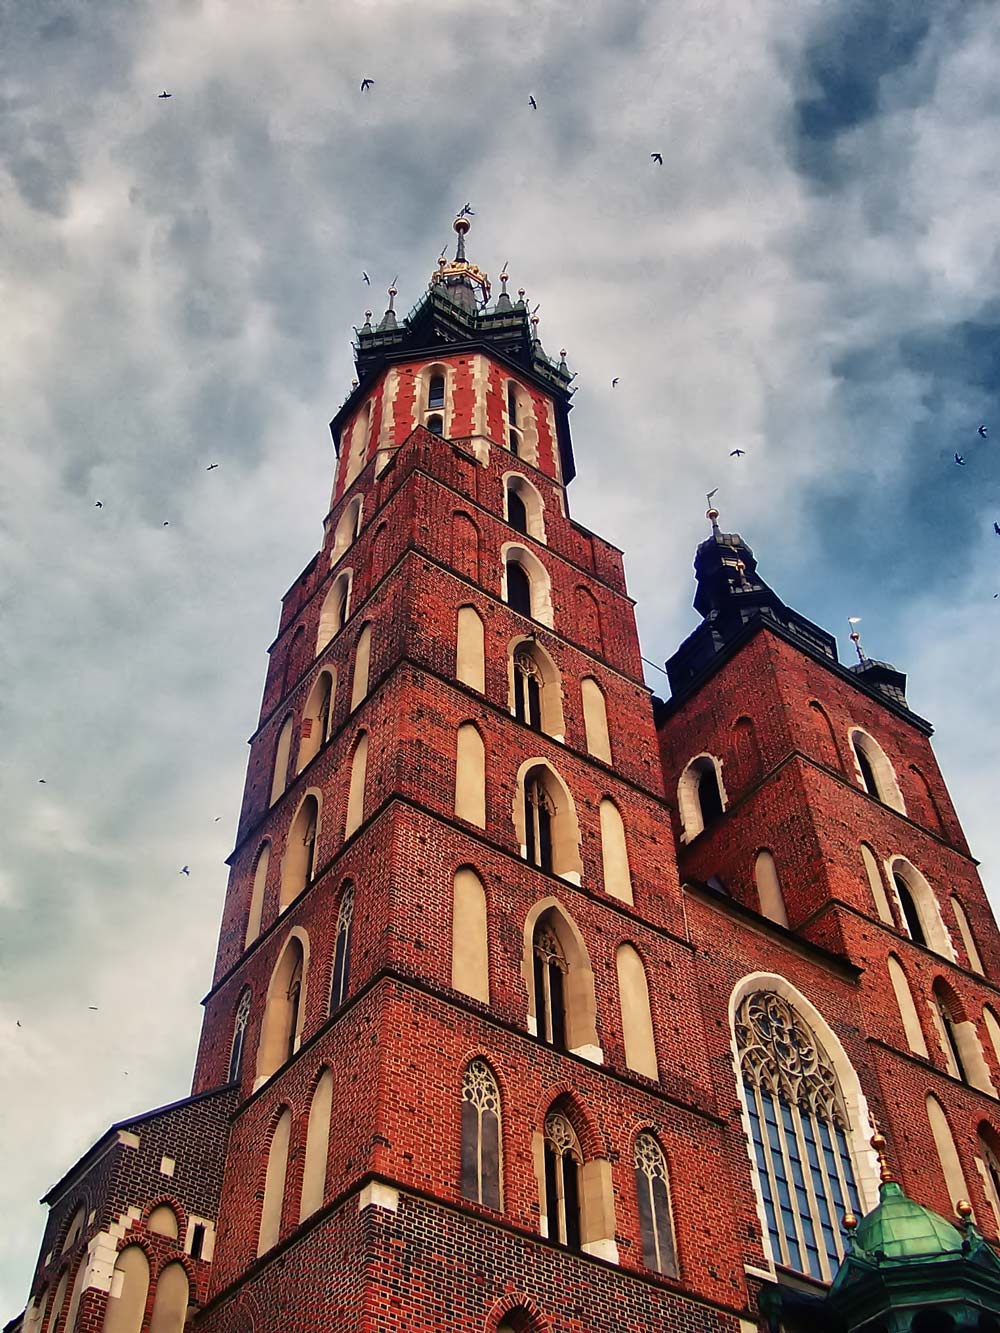 Tower at St. Mary's Basilica in Krakow, Poland